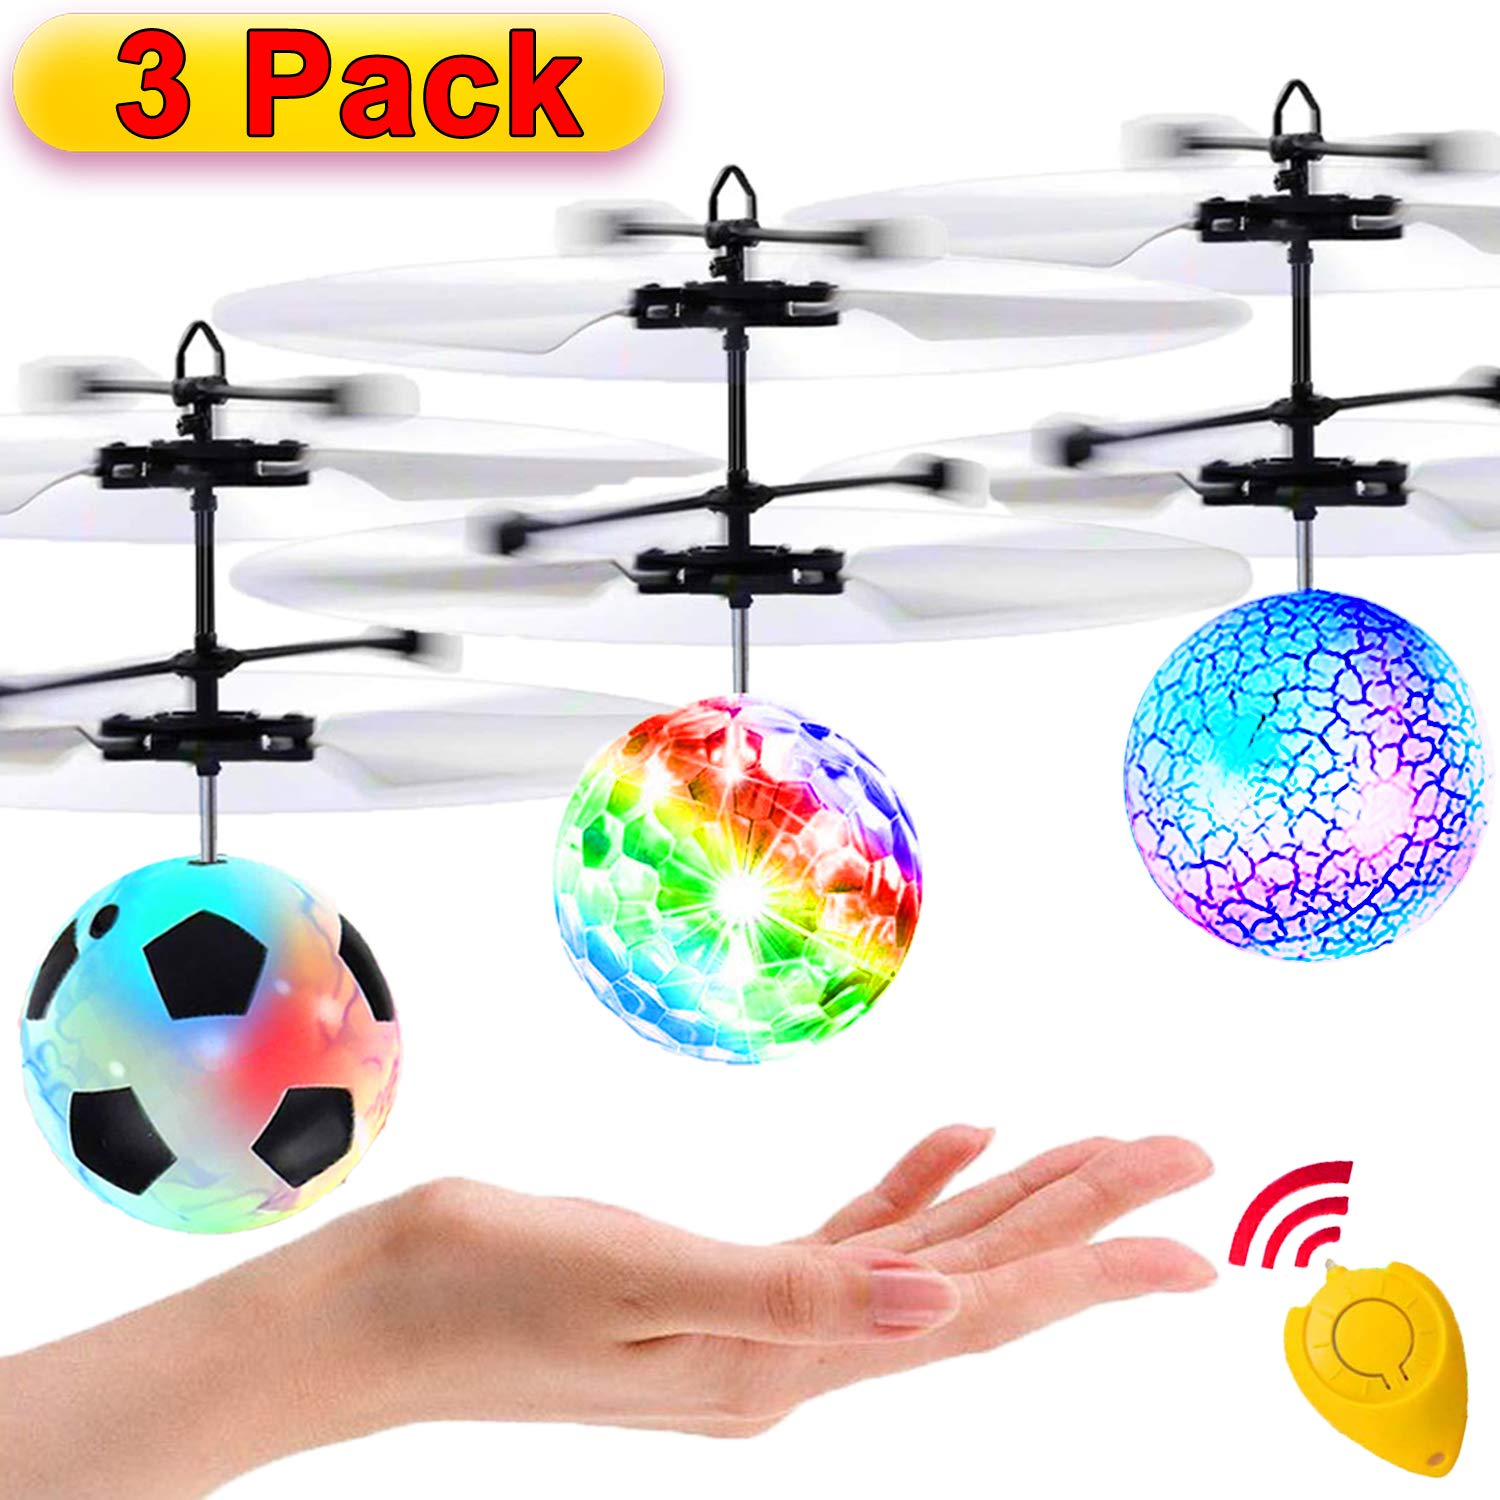 3 Pack Flying Ball Kids Toys RC Flying Toys Hand Control Helicopter Infrared Induction RC Flying Light Up Toys Indoor Outdoor Games Remote Control Drone Rechargeable by TOPLEE